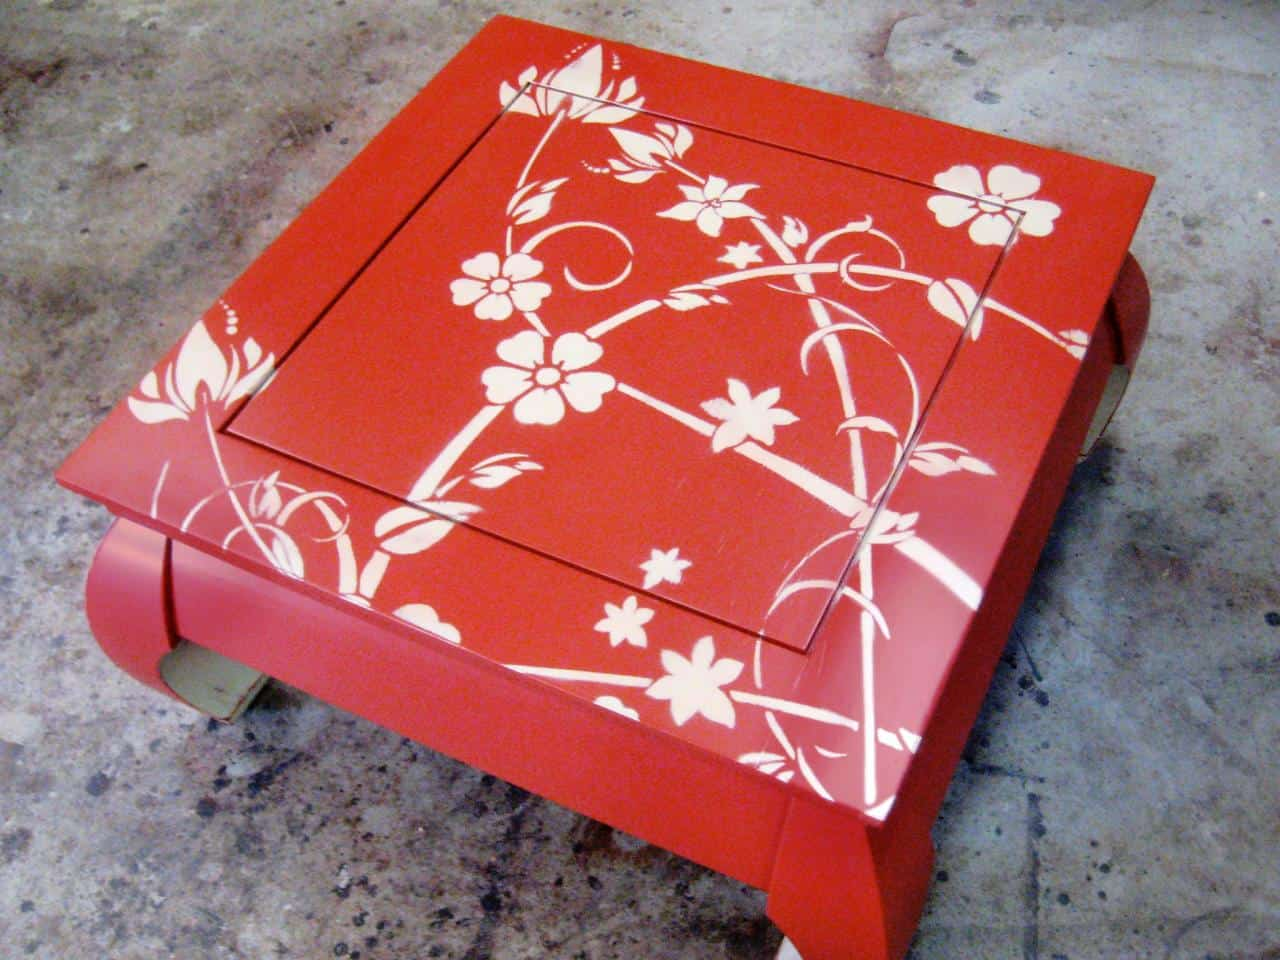 Bright stenciled wooden table